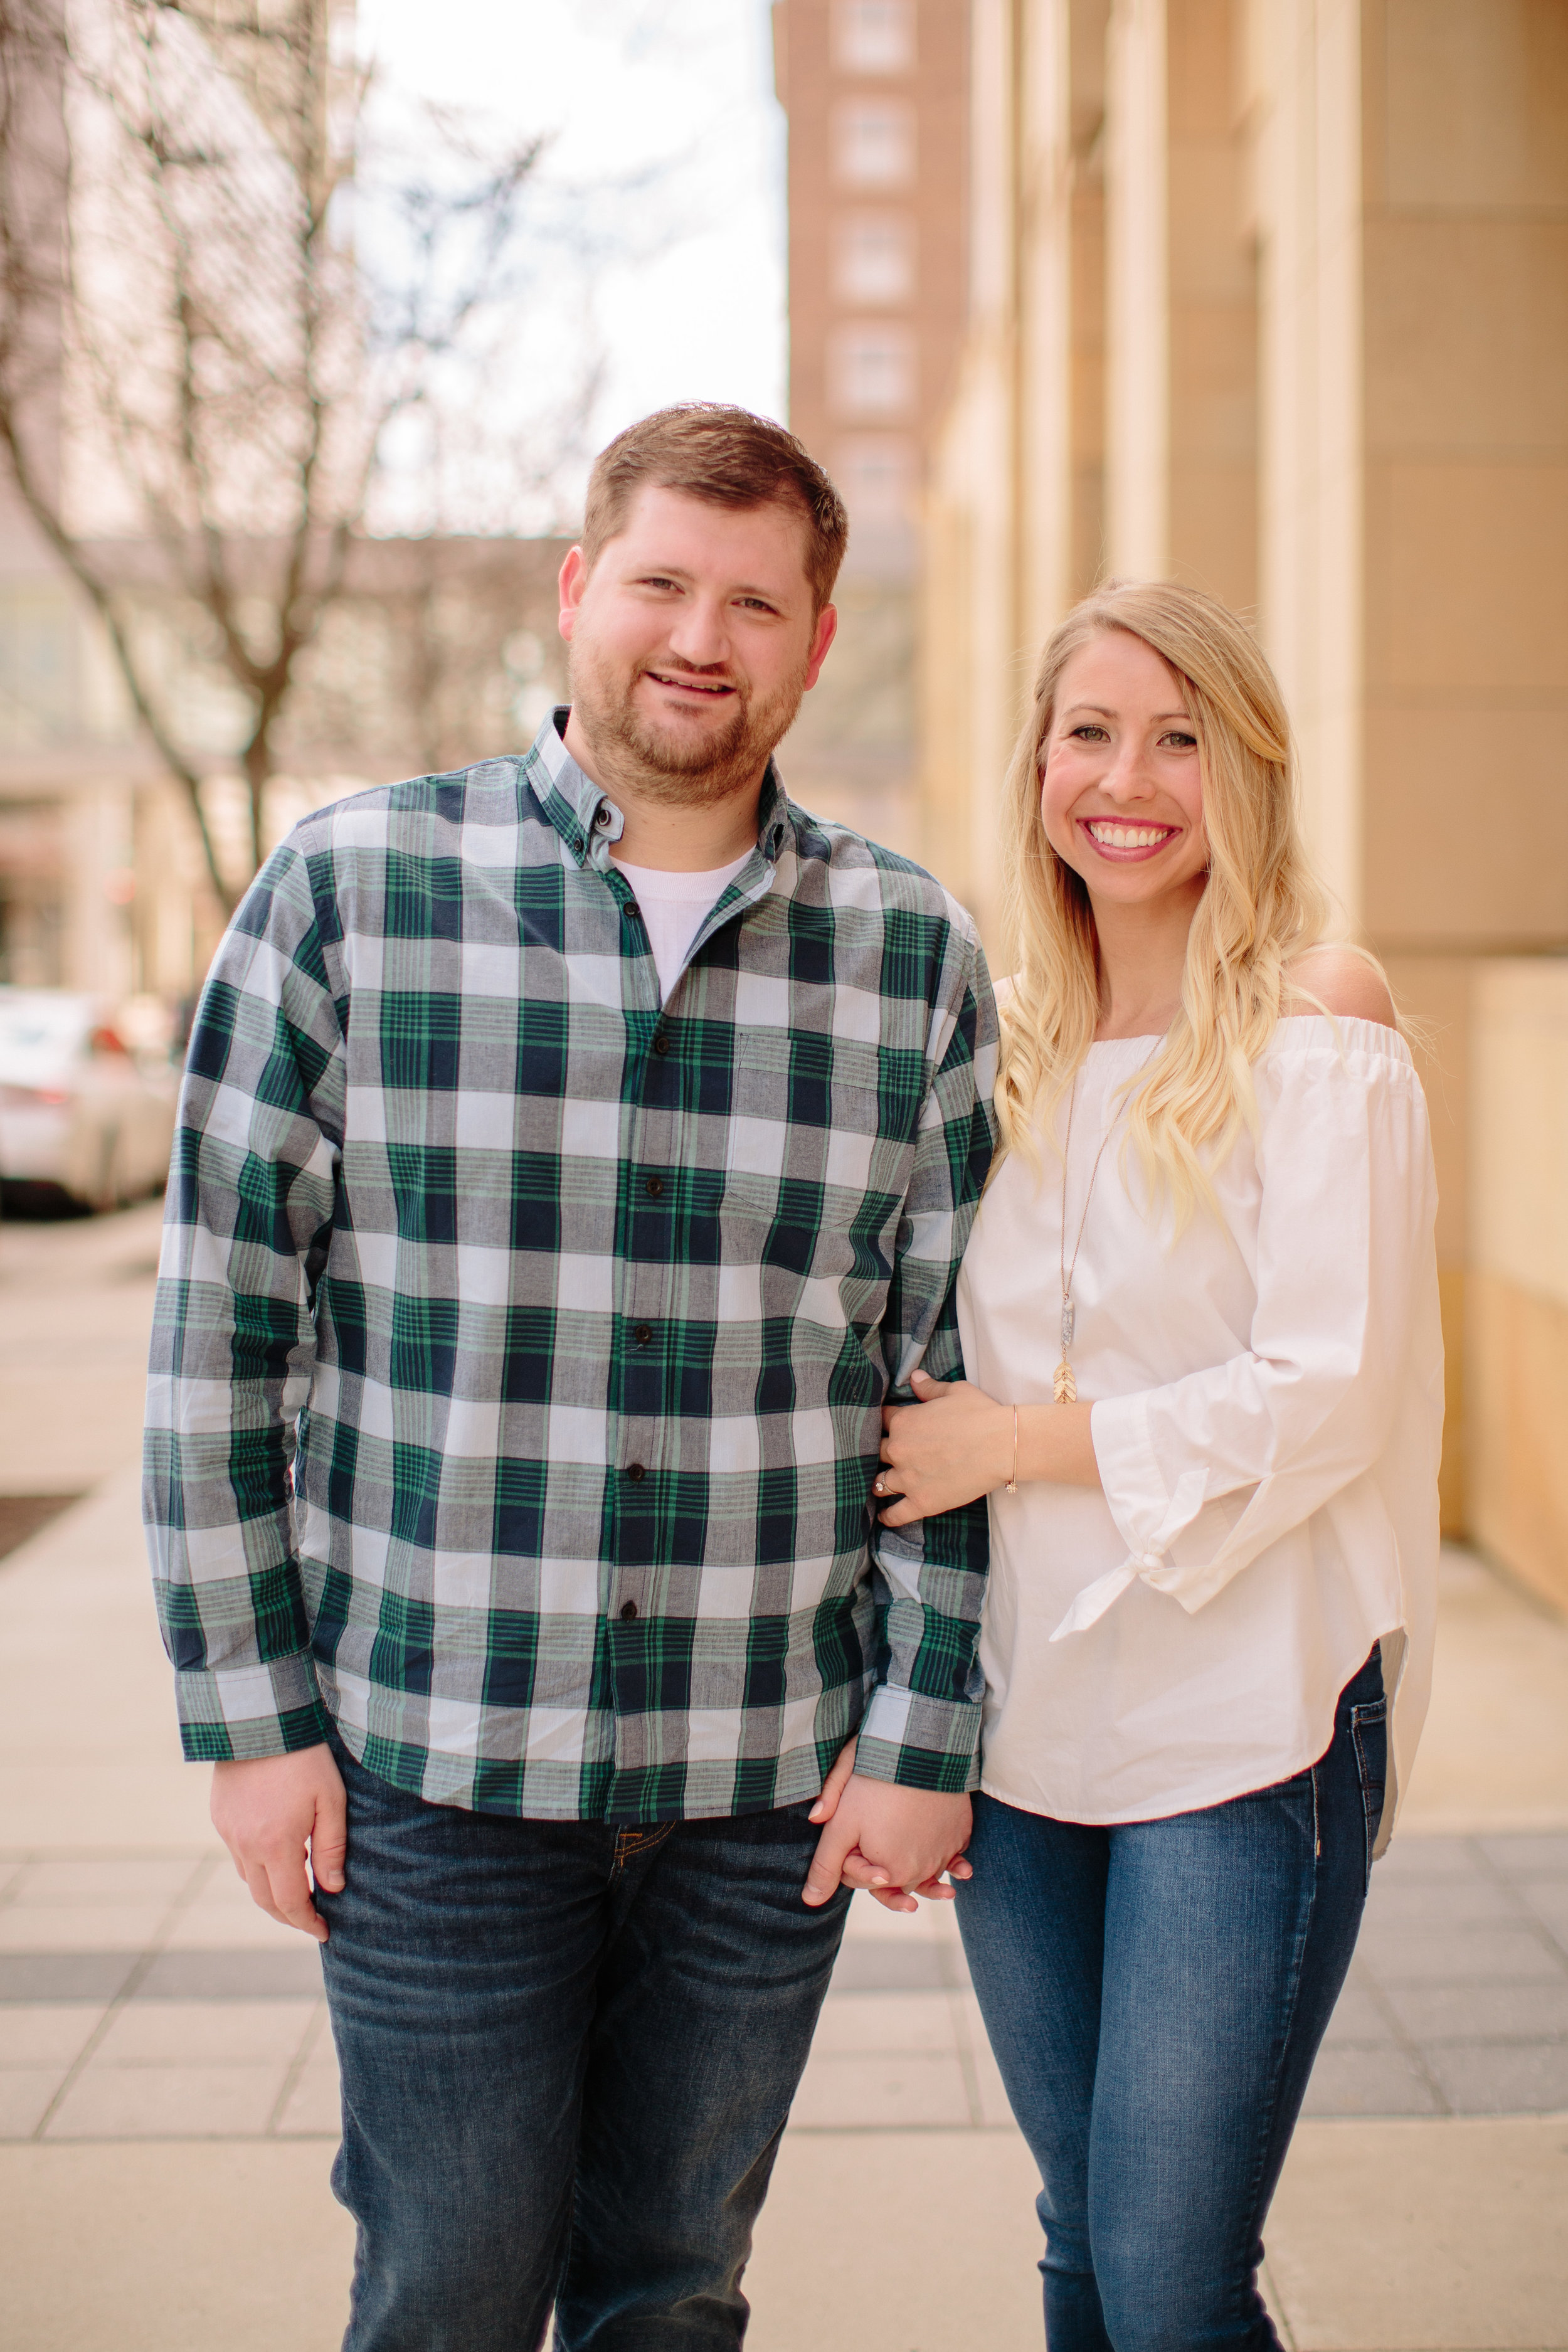 downtown des moines engagement session photography